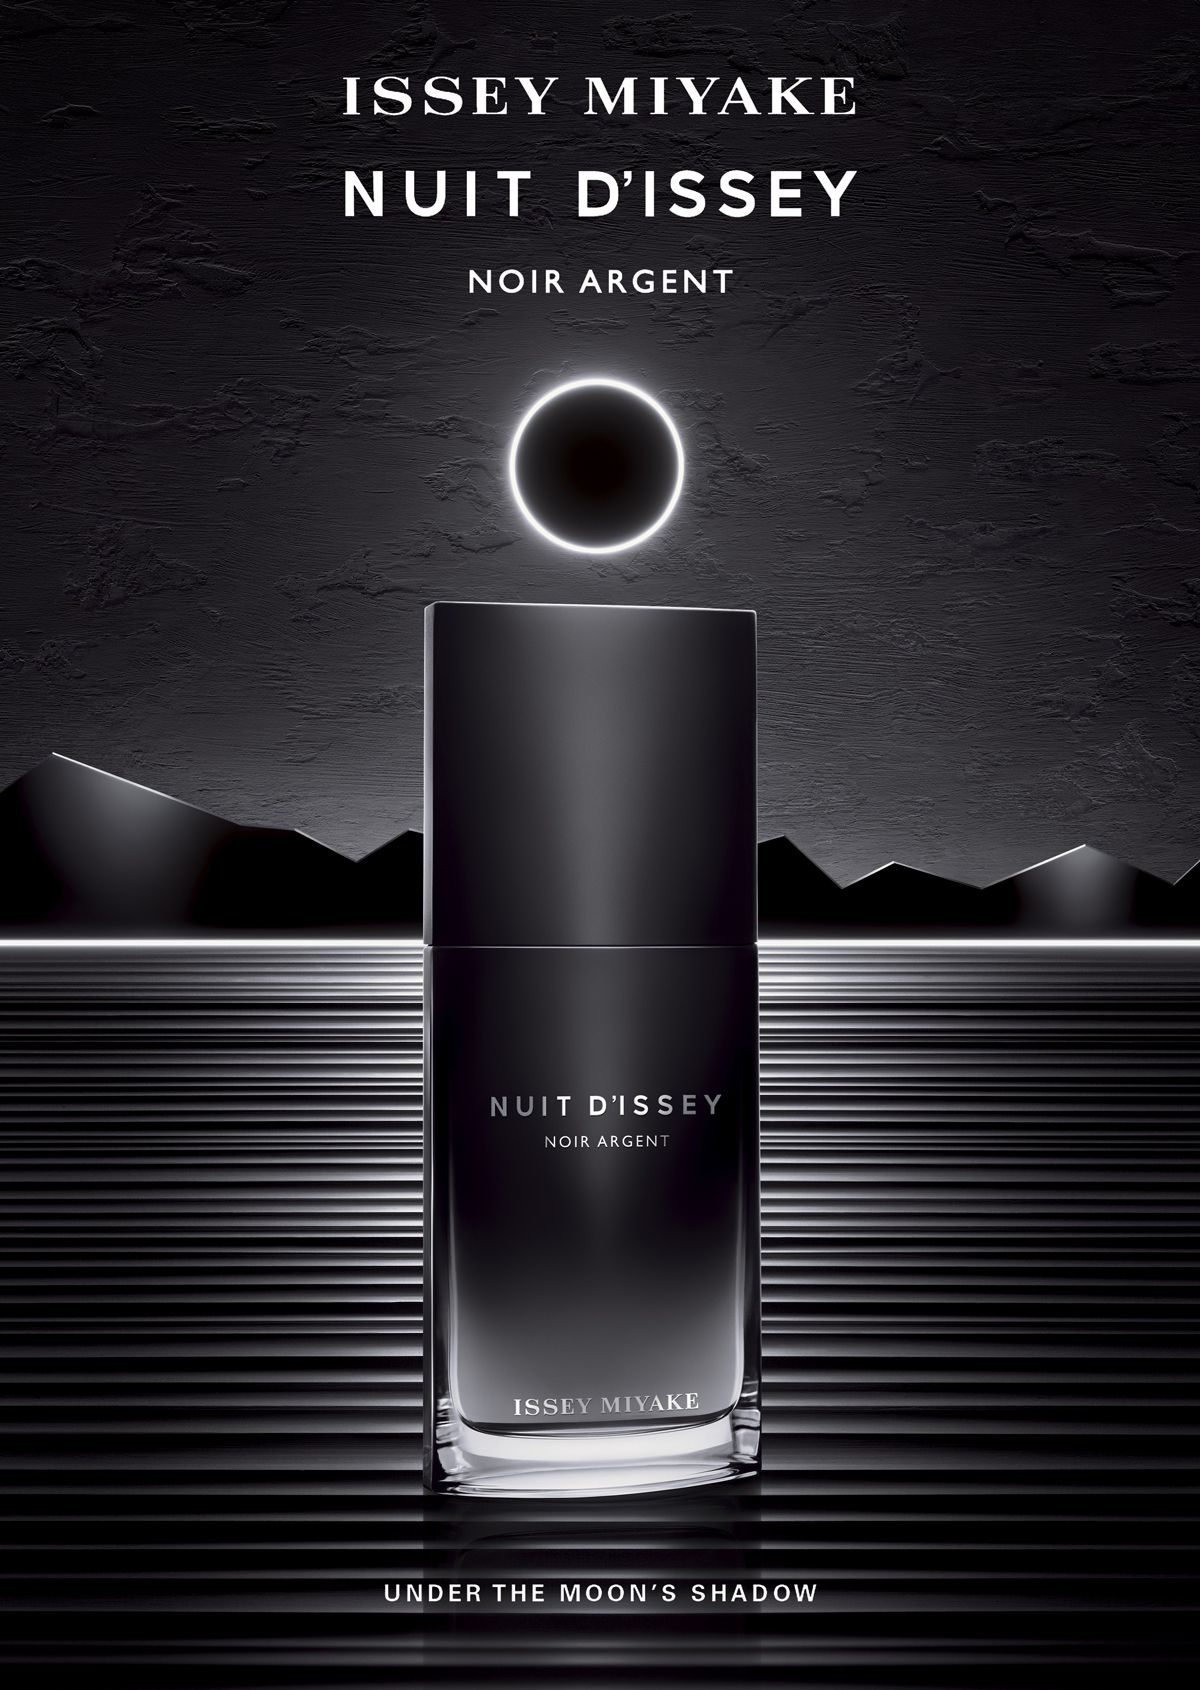 Issey Miyake Nuit D_Issey Noir Argent Banner